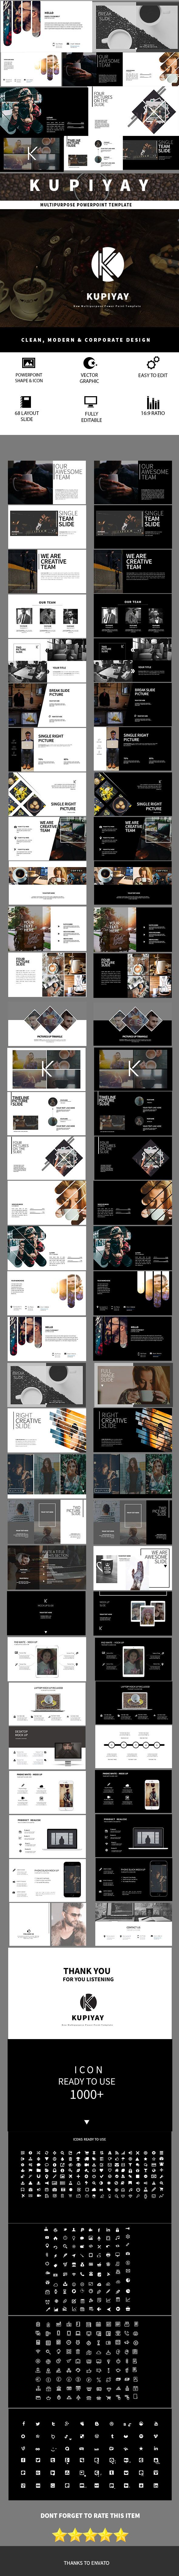 KUPIYAY Clean Multipose Powerpoint Template